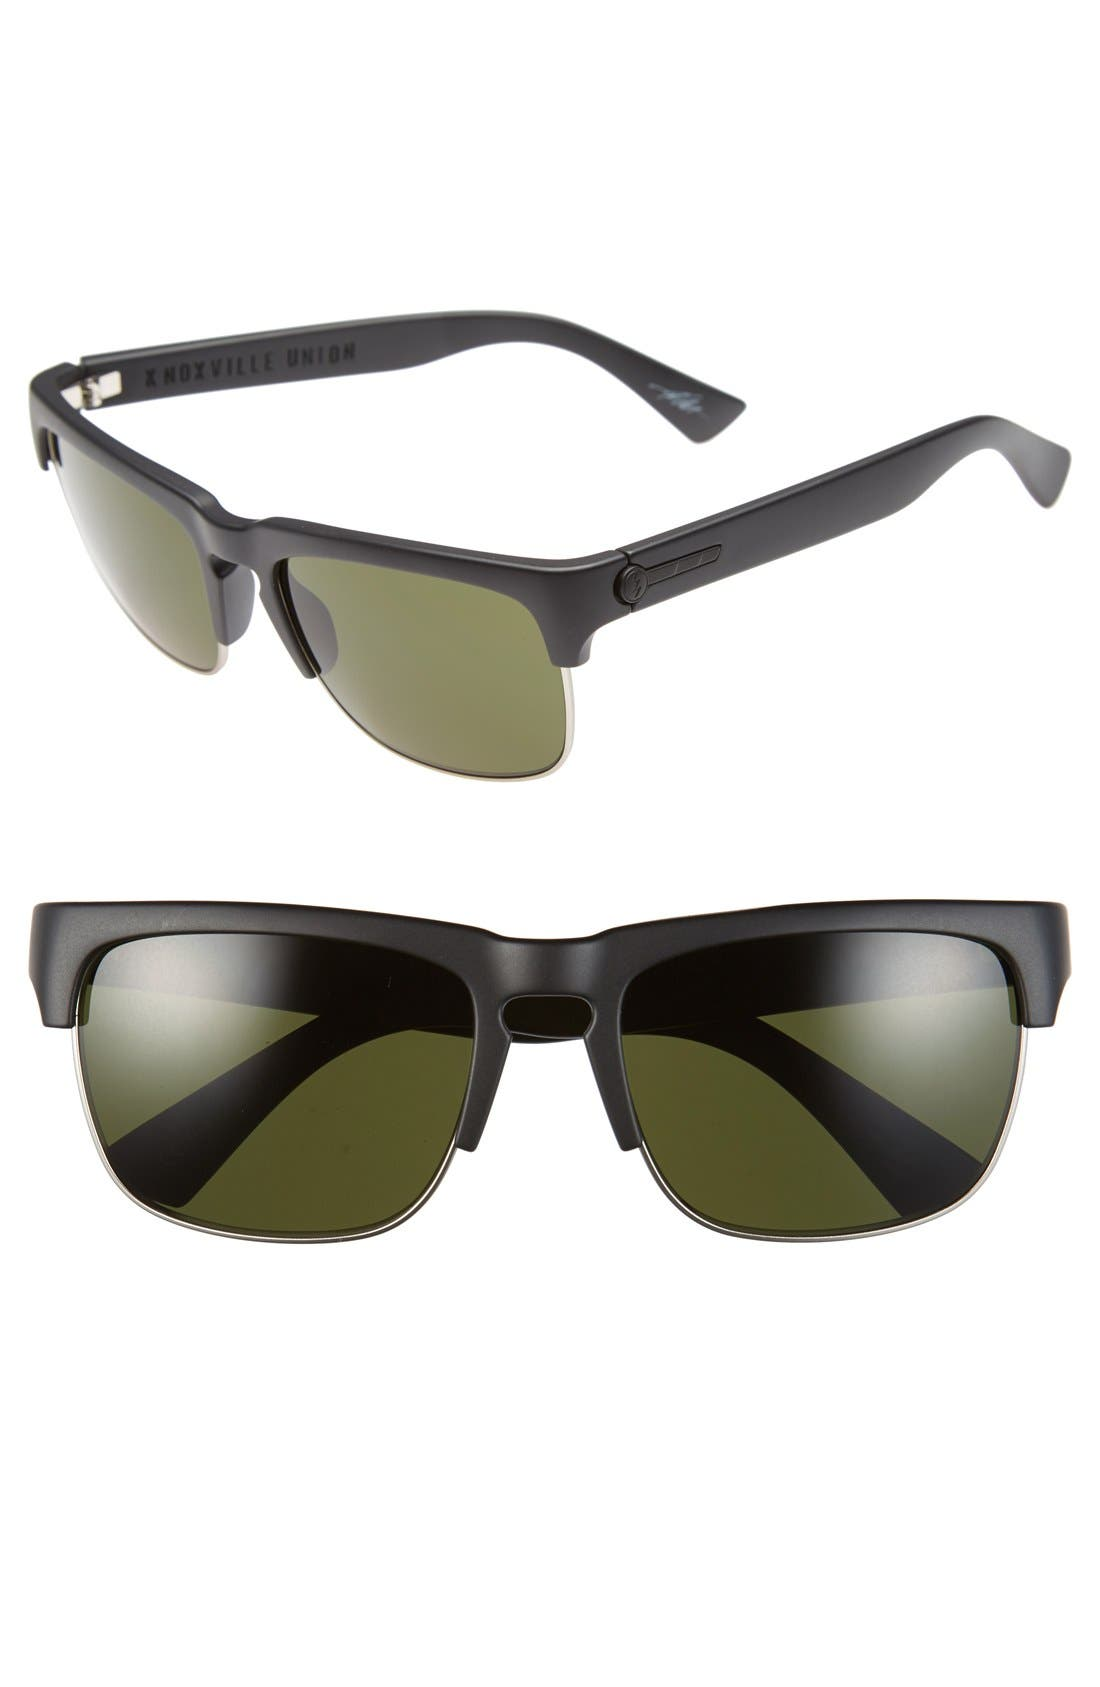 ELECTRIC Knoxville Union 55mm Sunglasses